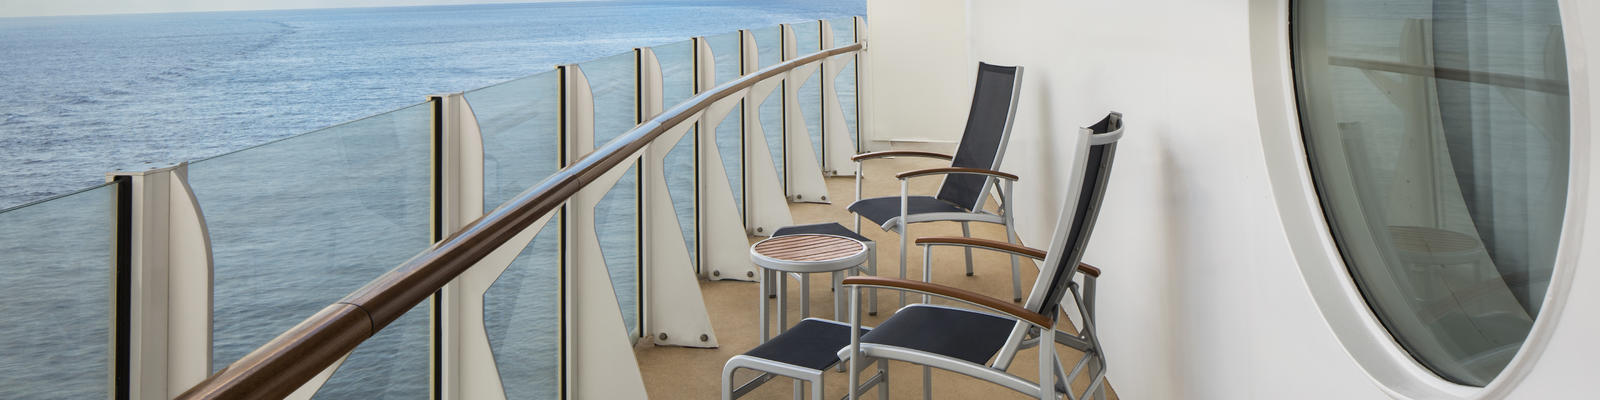 10 Things Not to Do on a Cruise Ship Balcony (Photo: Royal Caribbean International)